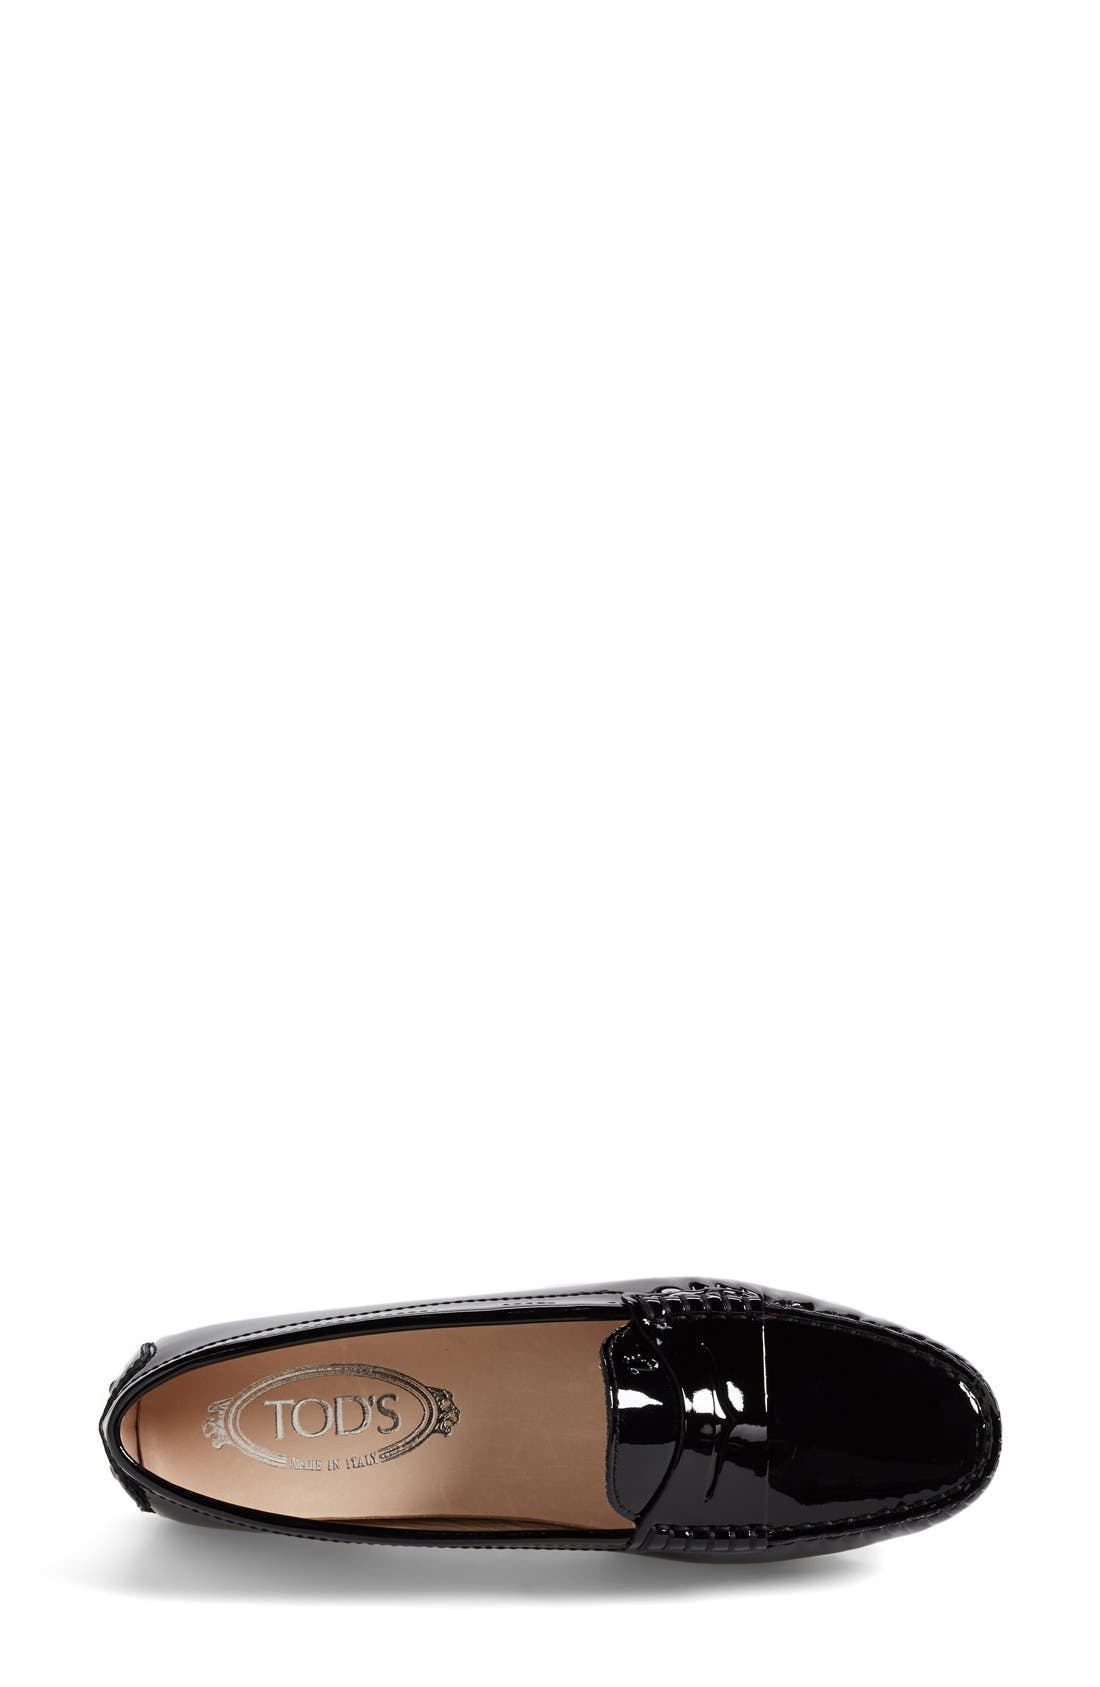 Alternate Image 3  - Tod's Patent Leather Penny Loafer (Women)